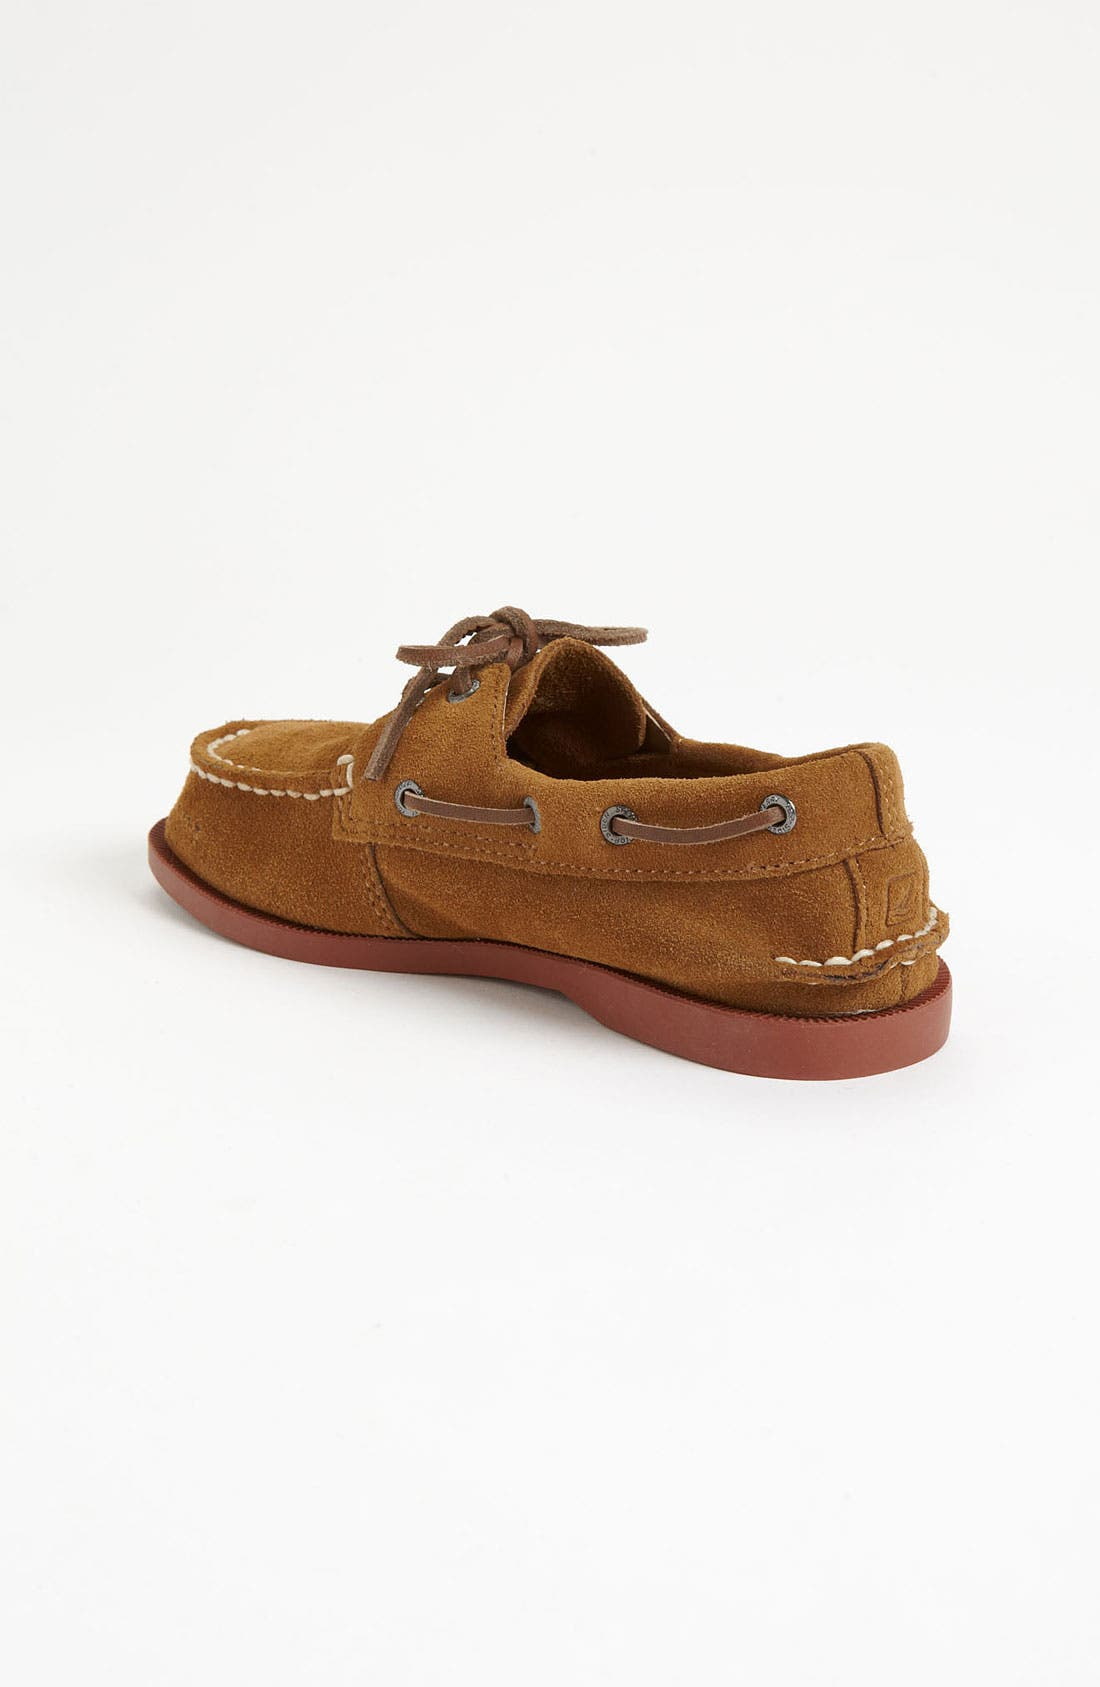 Alternate Image 2  - Sperry Top-Sider® 'Authentic Original' Boat Shoe (Walker, Toddler, Little Kid & Big Kid)